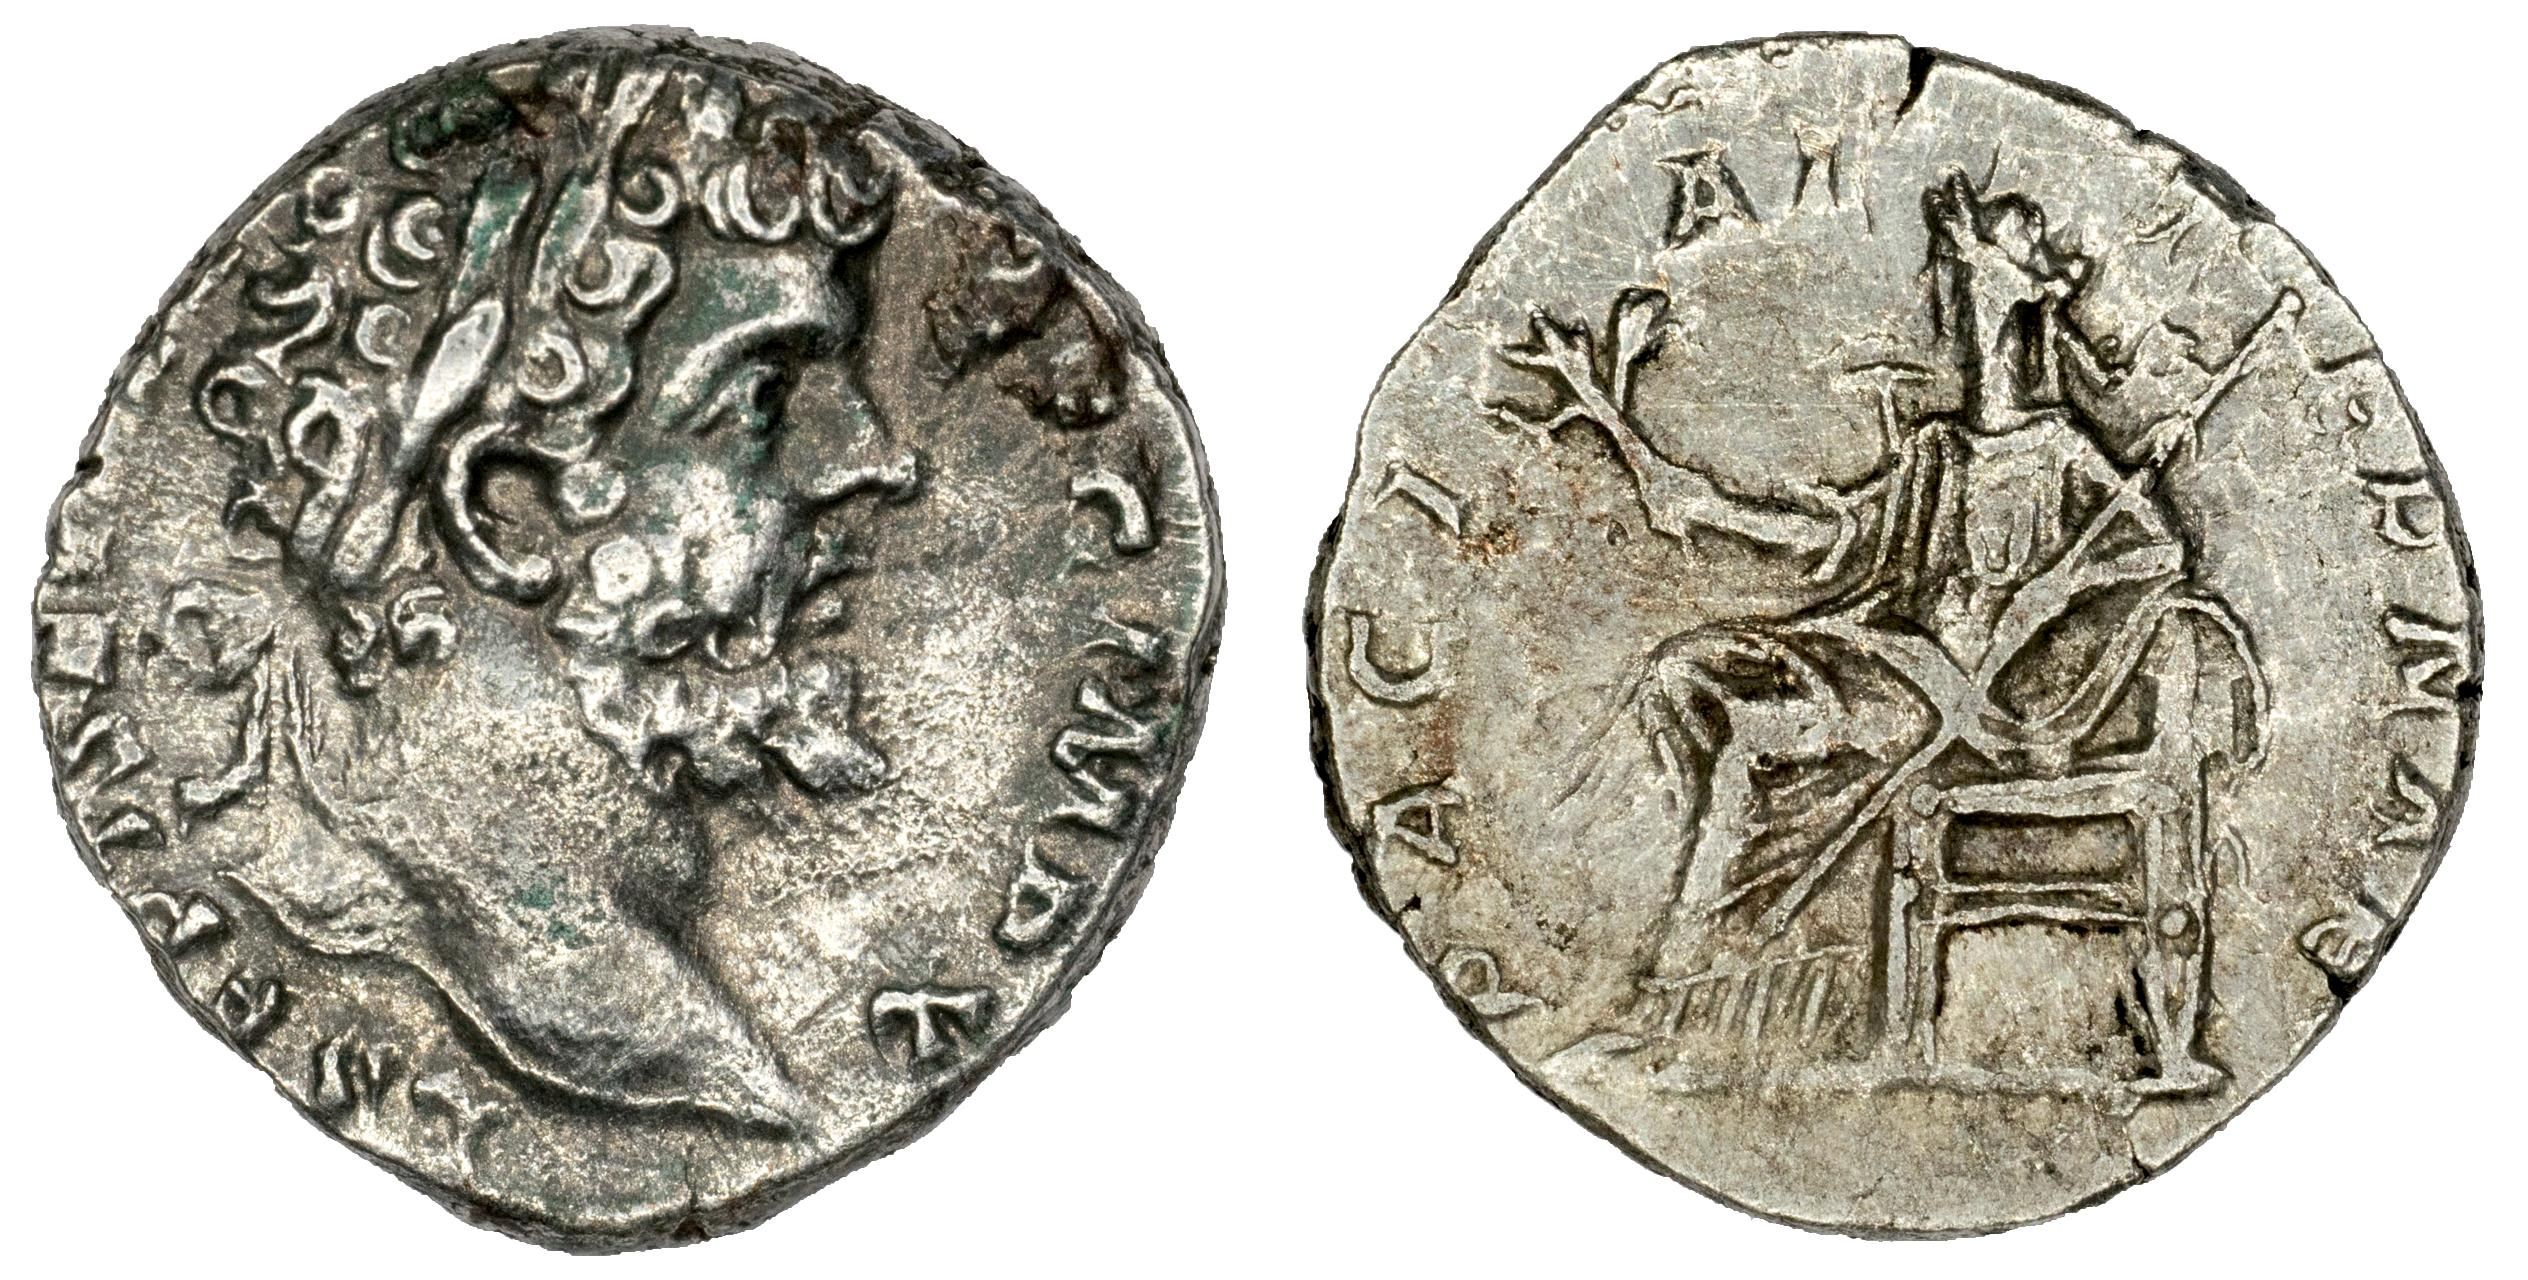 /Files/Images/Coinsite/CoinDB/SeptimiusSeverus2.jpg